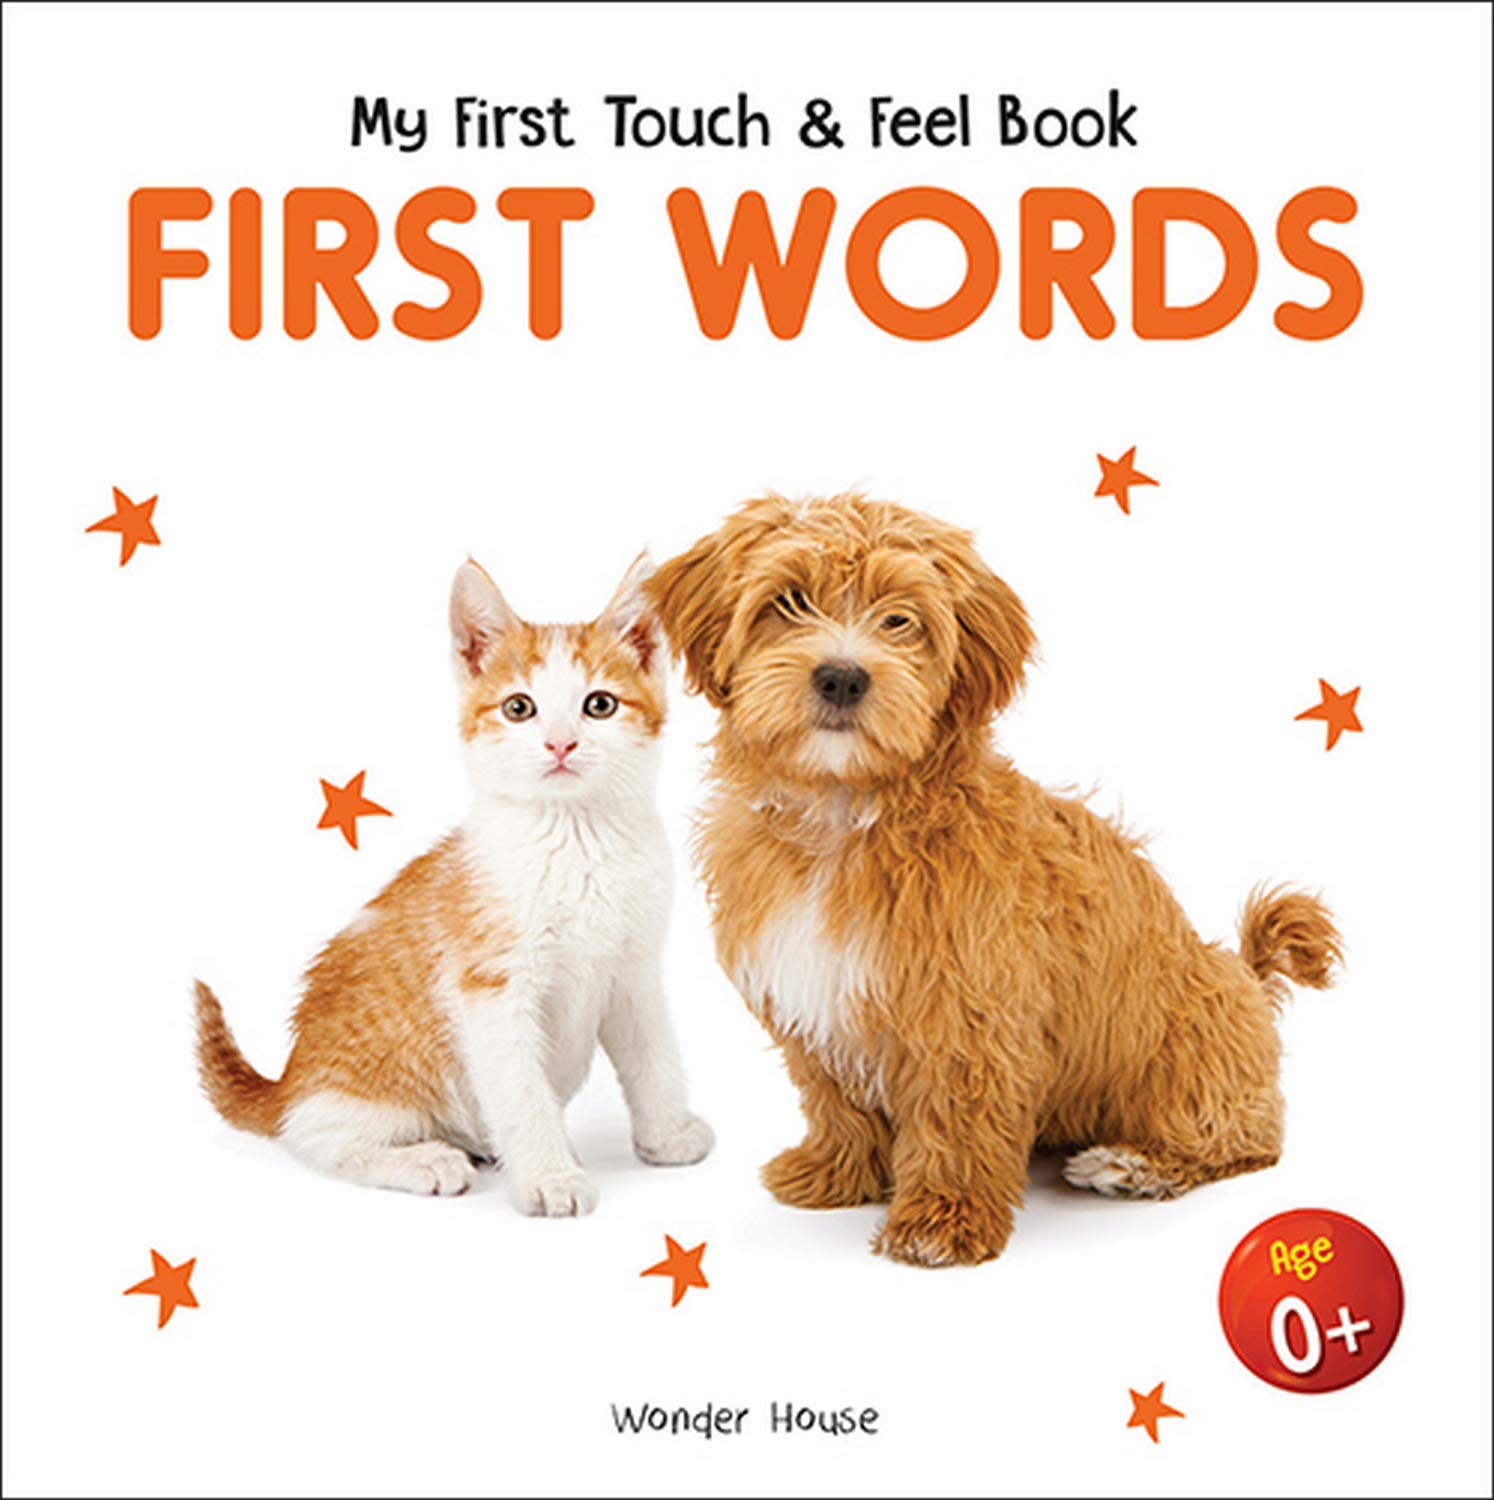 My First Book Of Touch And Feel - First Words : Touch And Feel Board Book For Children